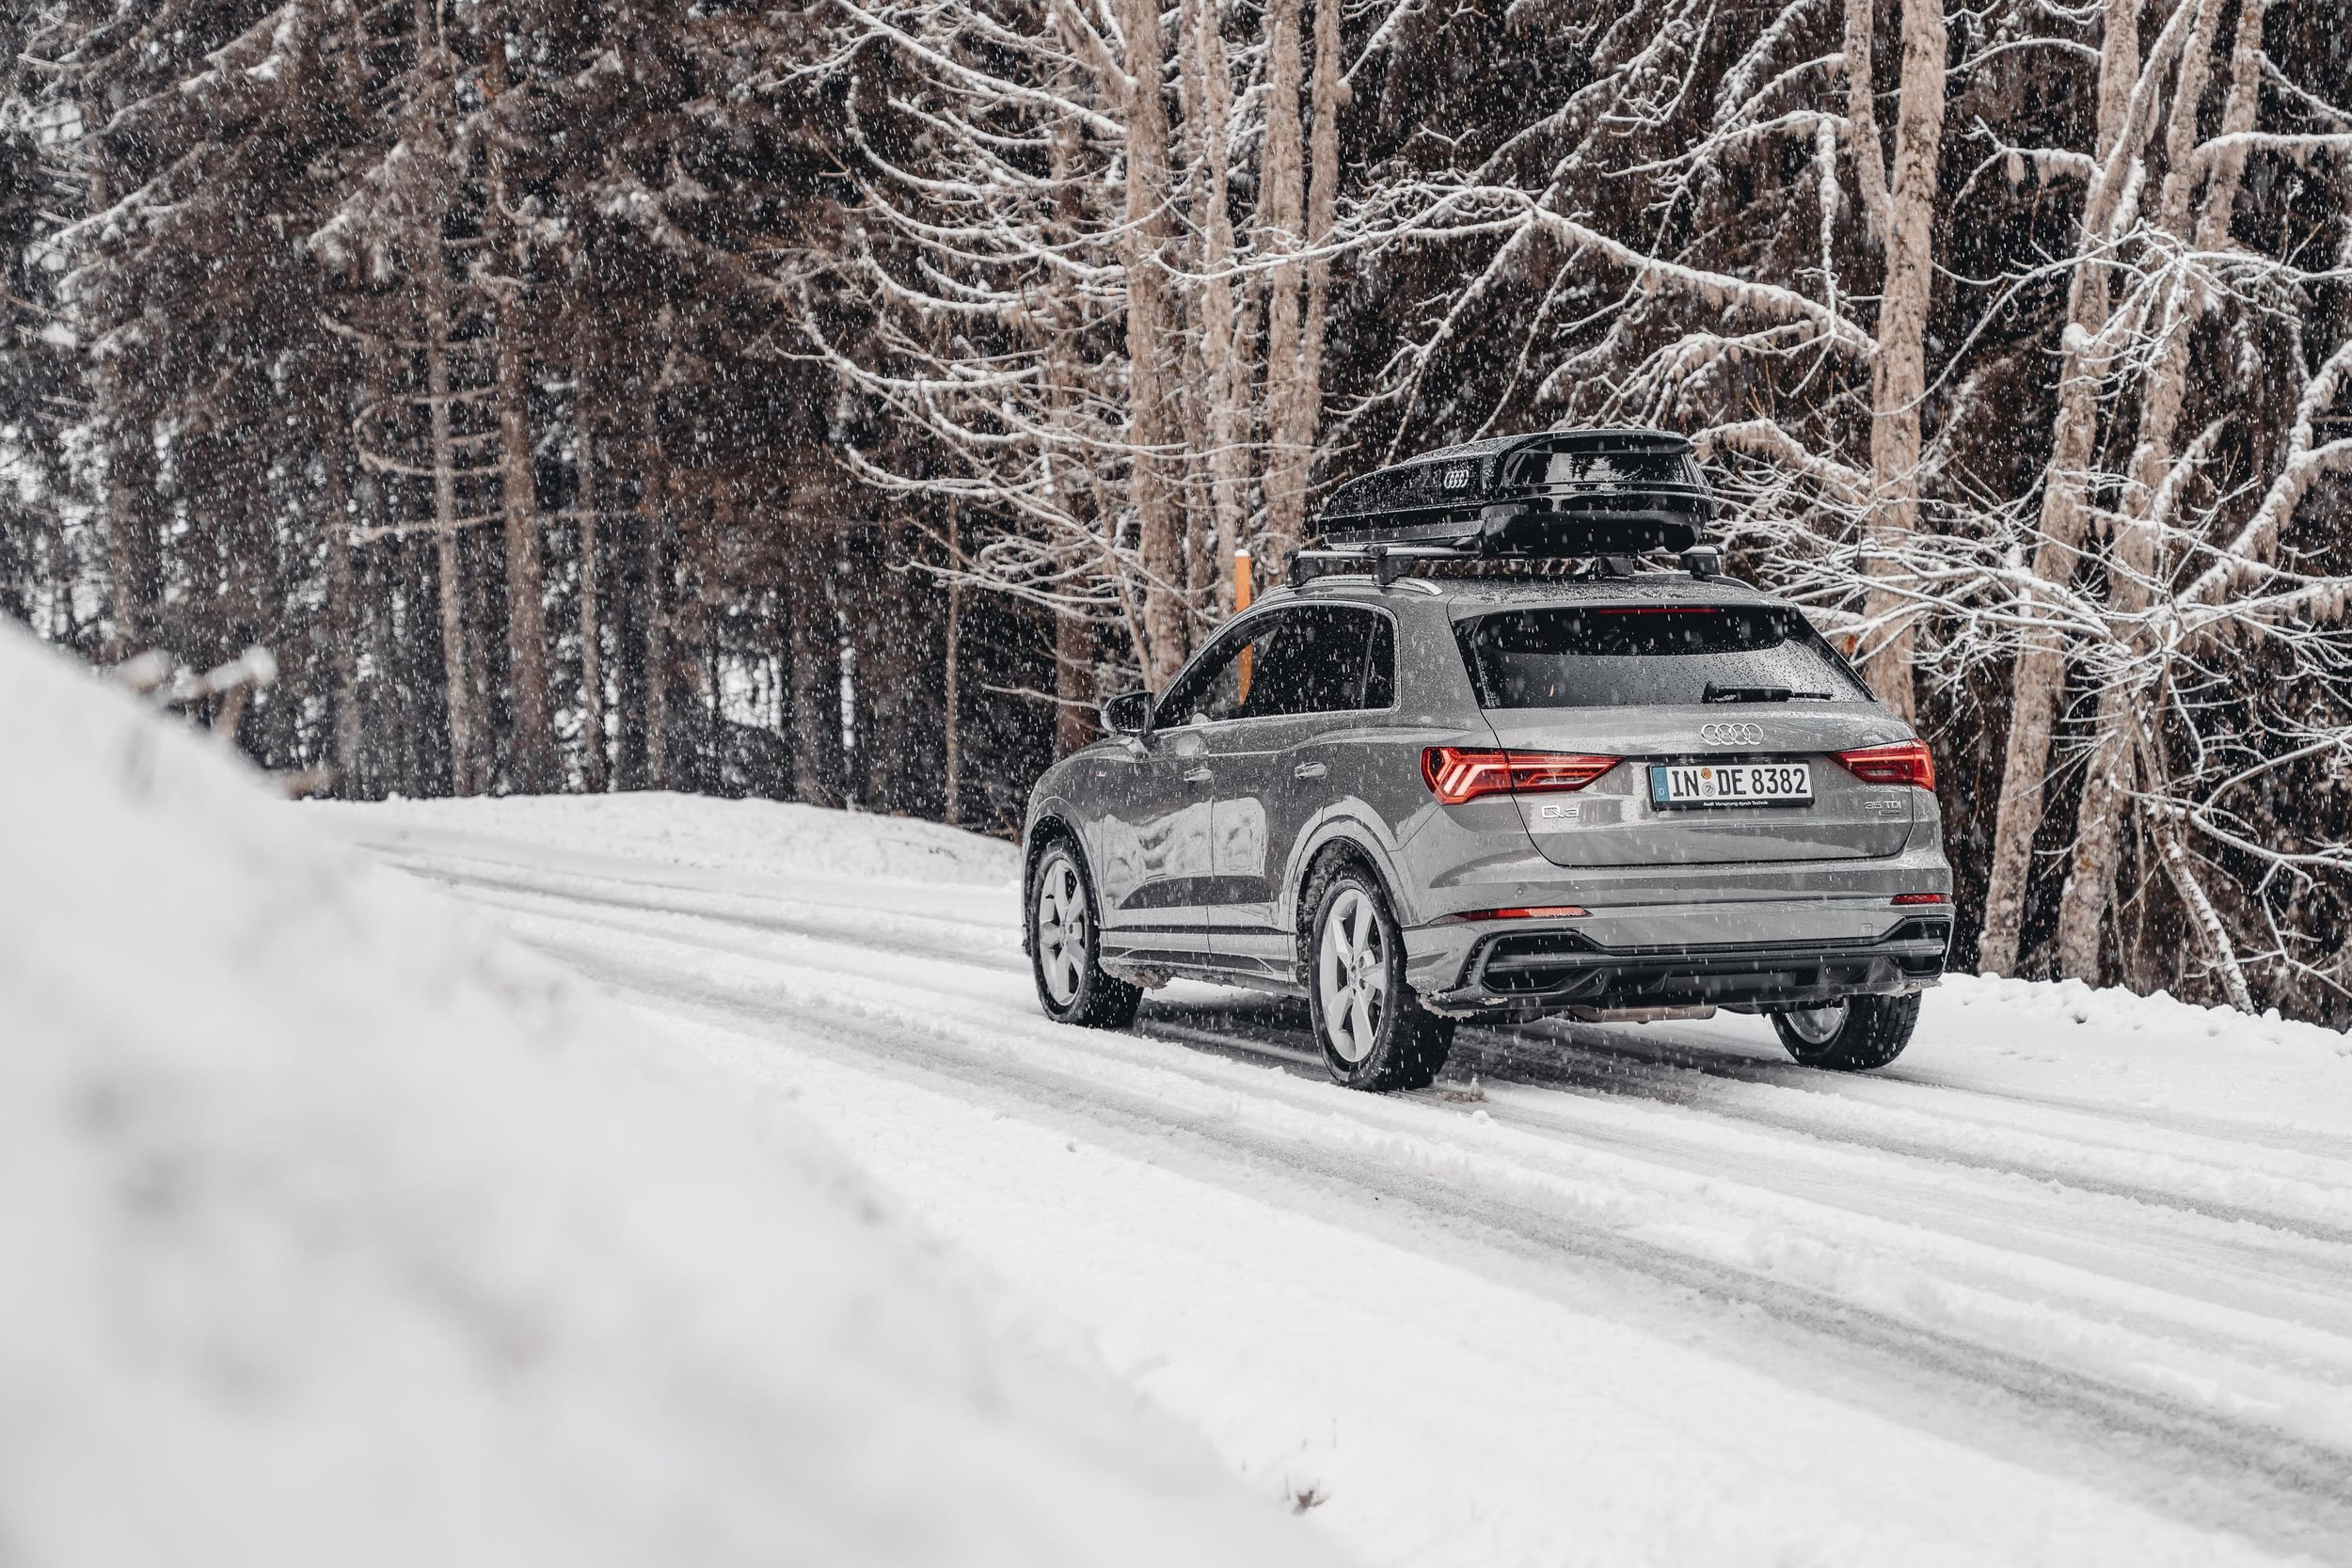 Maximilian-Otto_Best-of-the-Alps_Roadtrip_Winter-2018_20.jpg